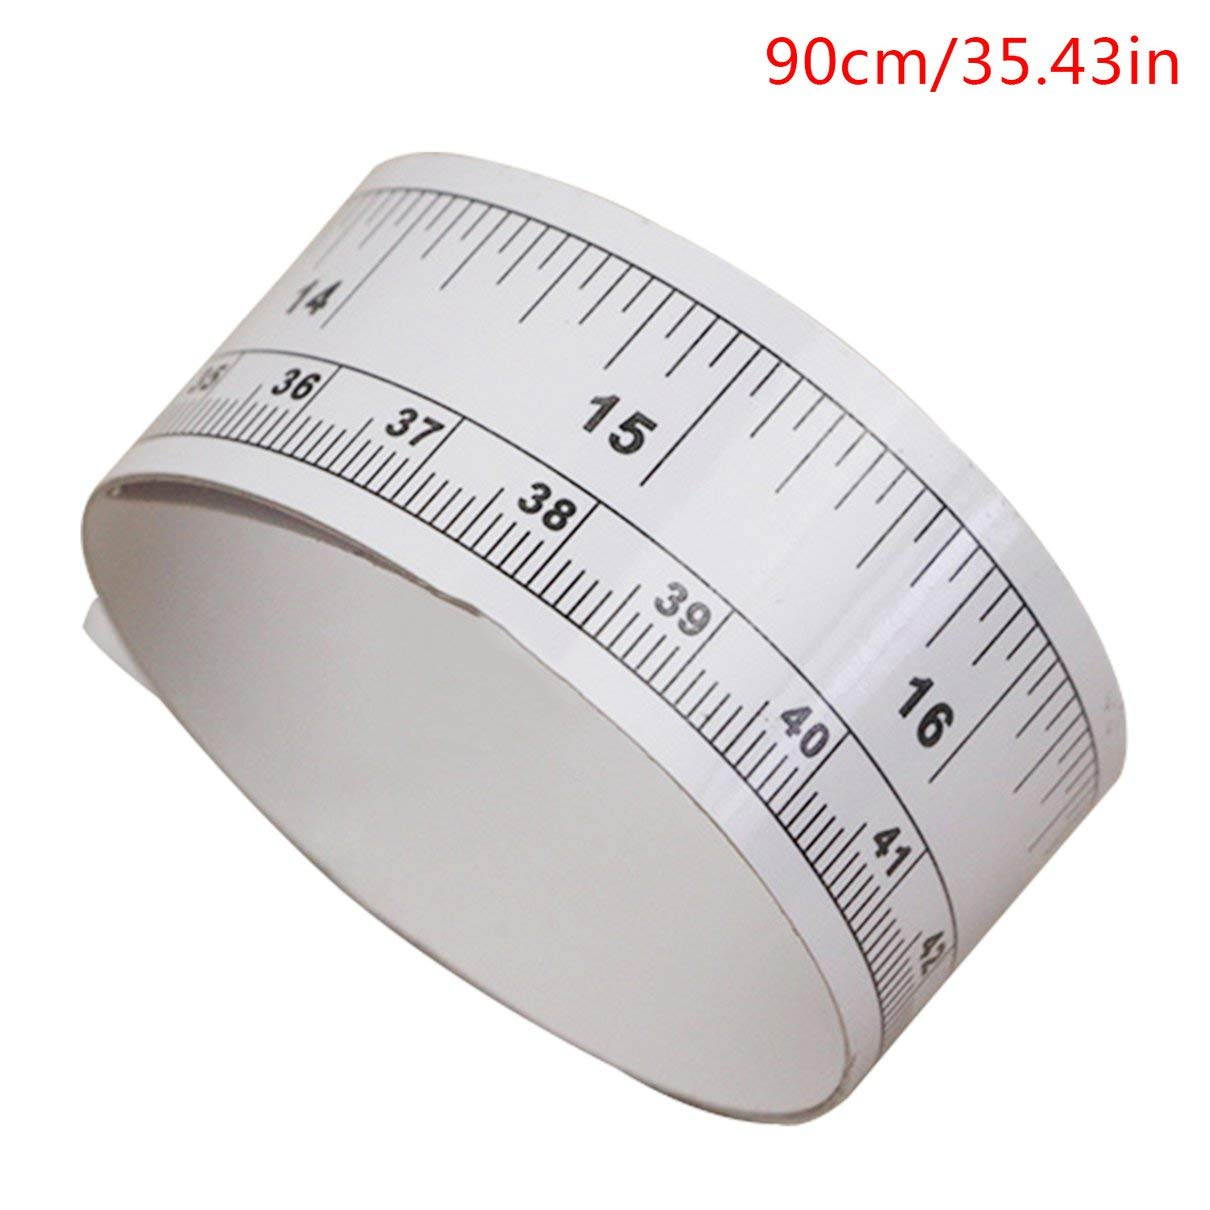 sticky ruler 90cm Sticky Scale Self Adhesive Metric Measure Gauge Tape Vinyl Ruler For Sewing Machine Sticker